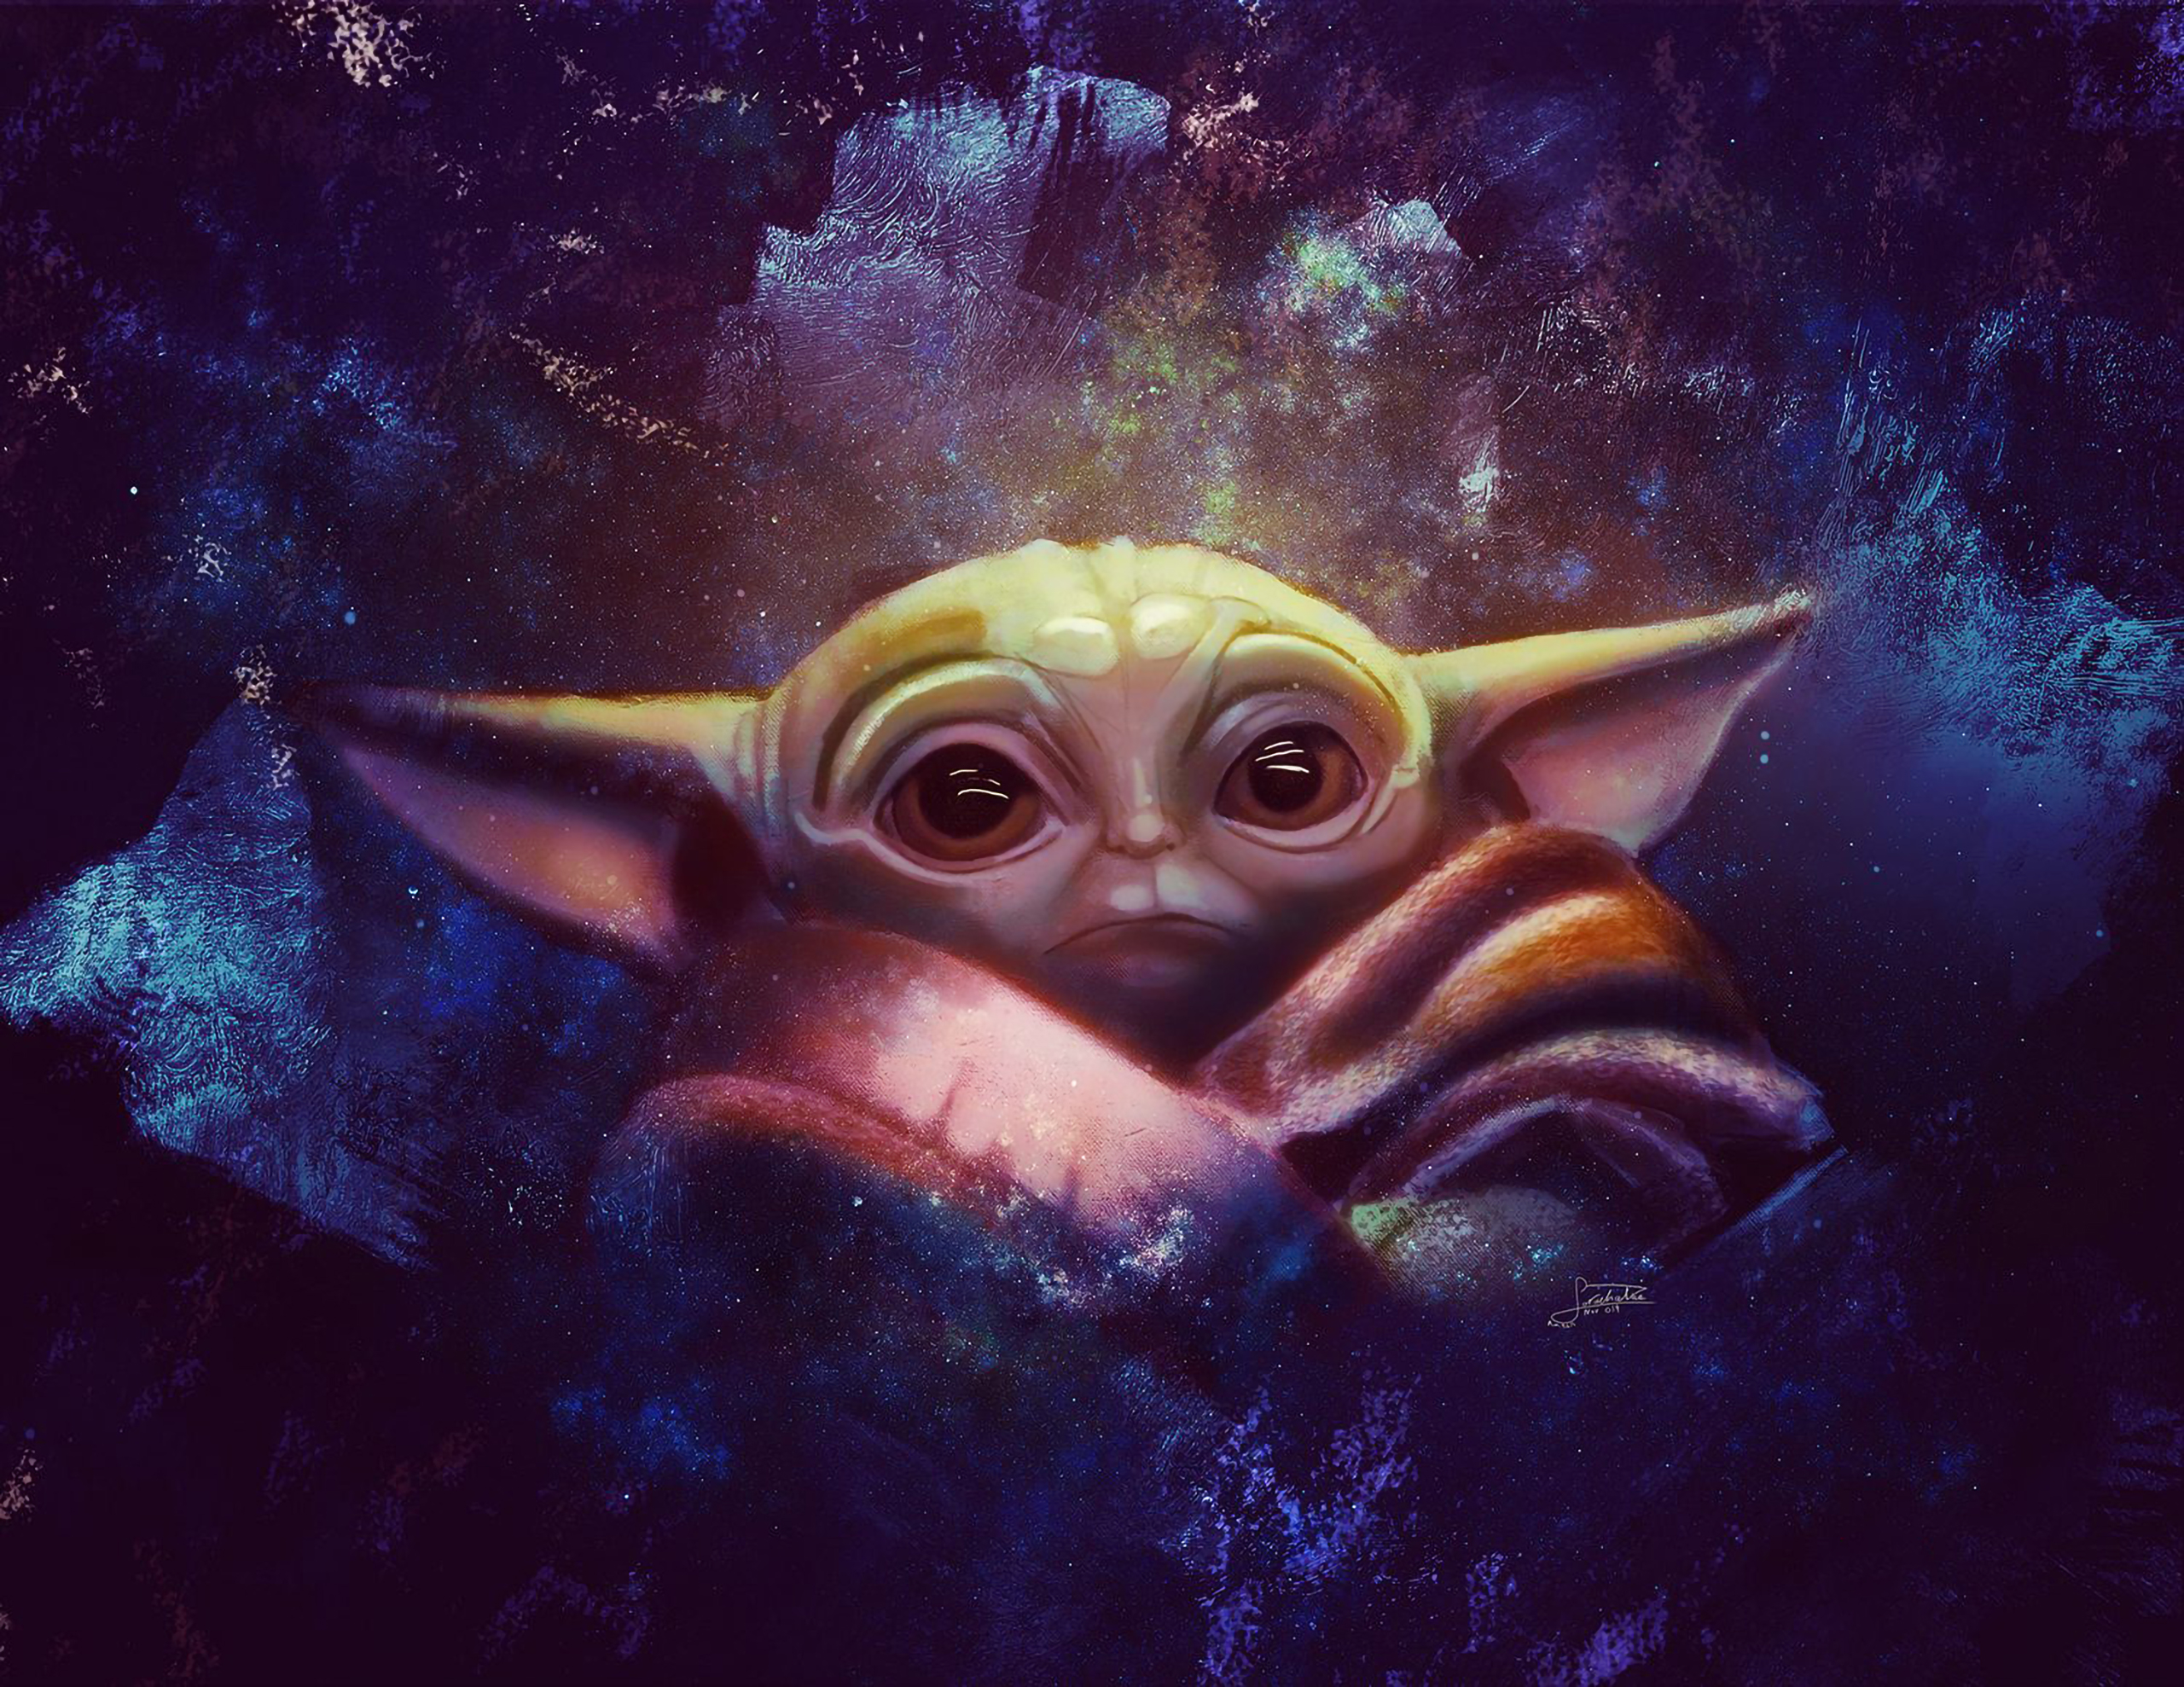 320x480 Baby Yoda 2020 Art Apple Iphone Ipod Touch Galaxy Ace Wallpaper Hd Tv Series 4k Wallpapers Images Photos And Background